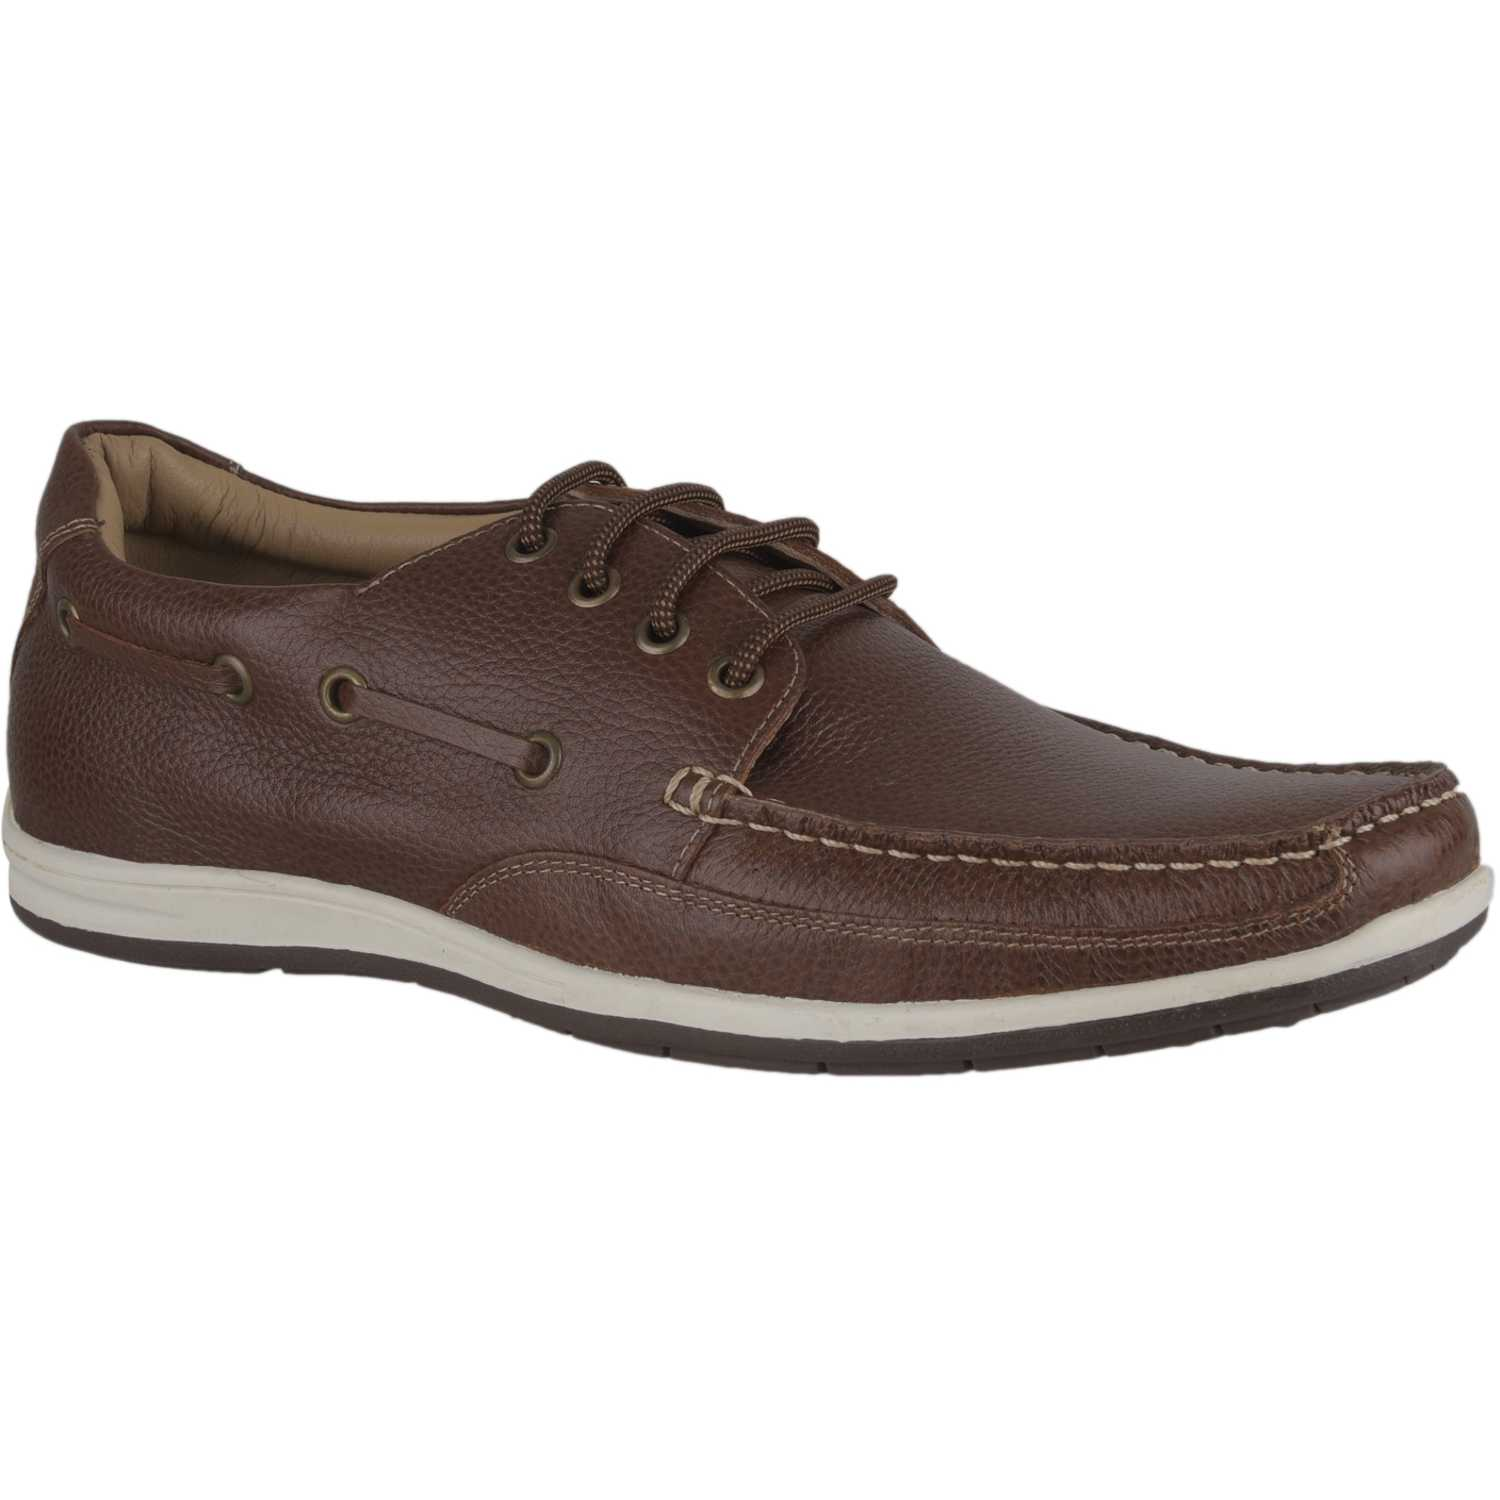 Bata adrian Marron Zapatillas Fashion